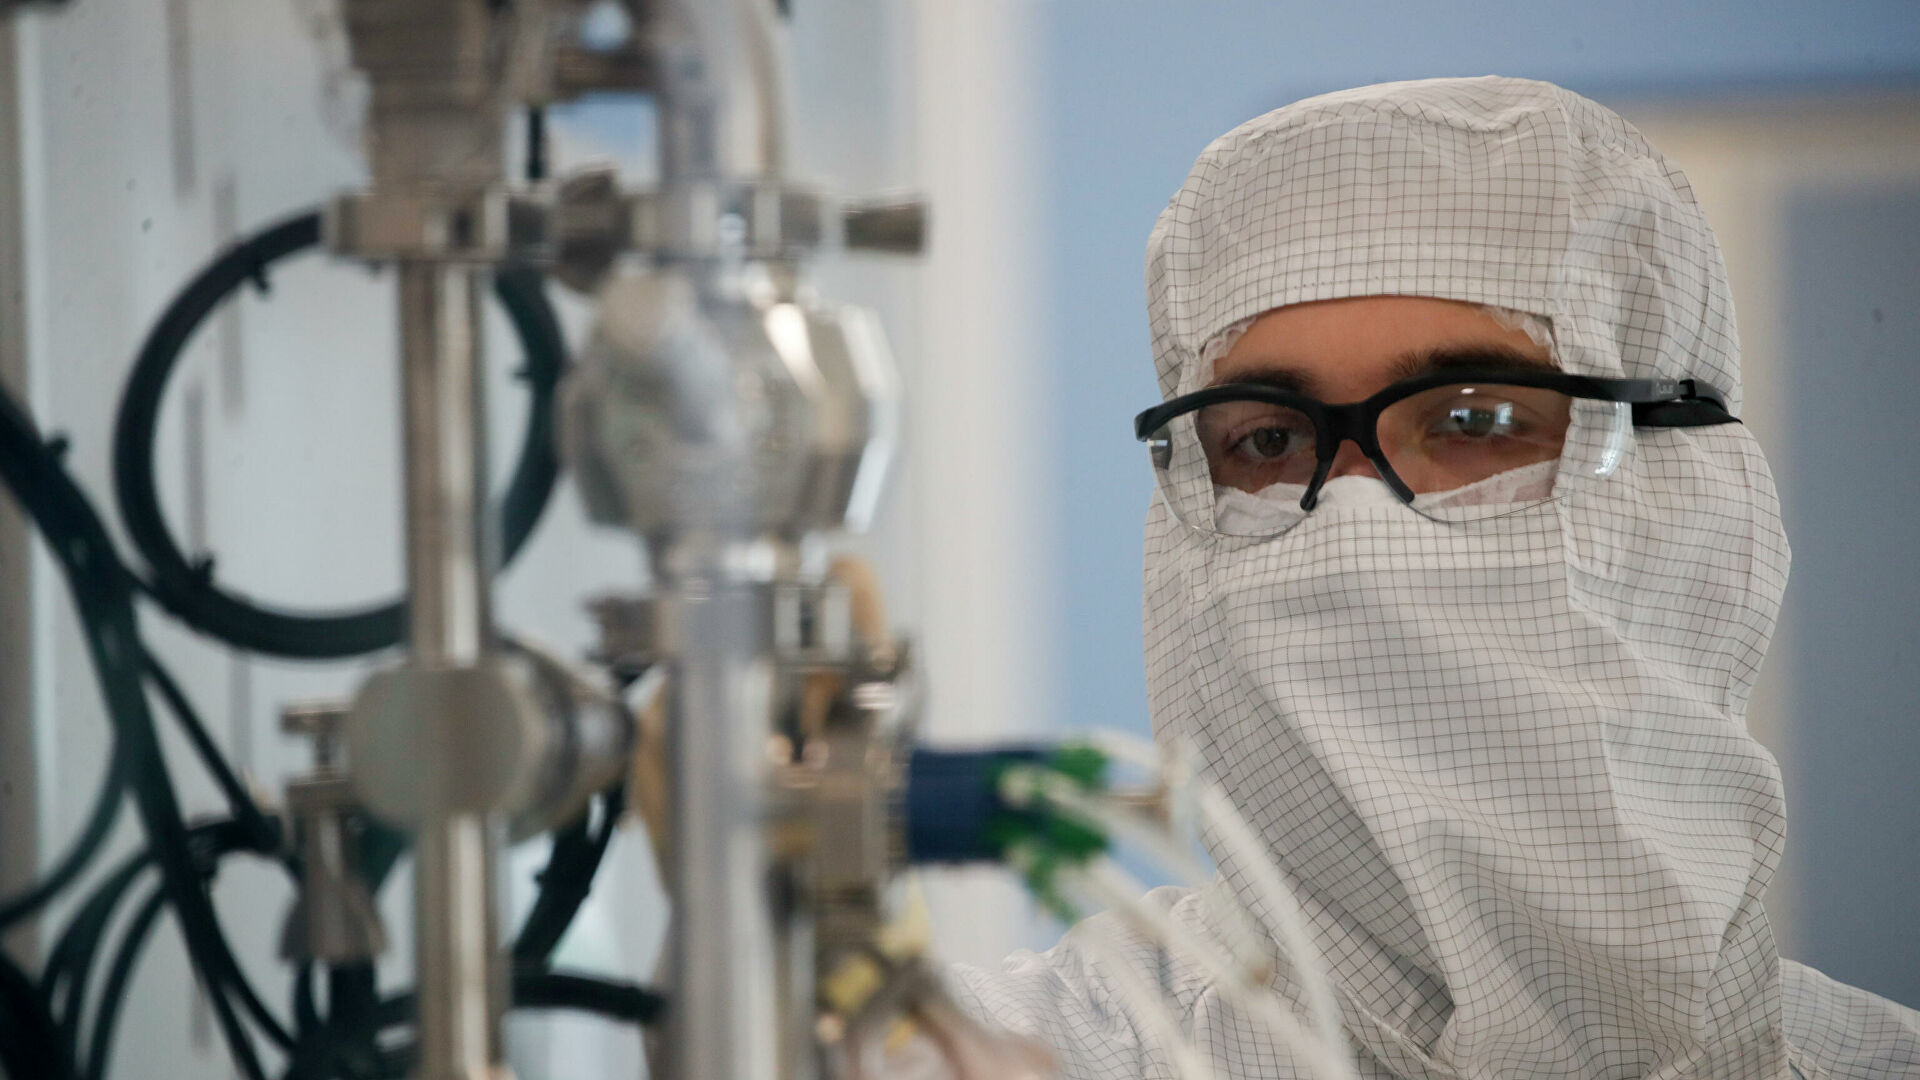 Media: AstraZeneca to supply Britain with two million doses of vaccine